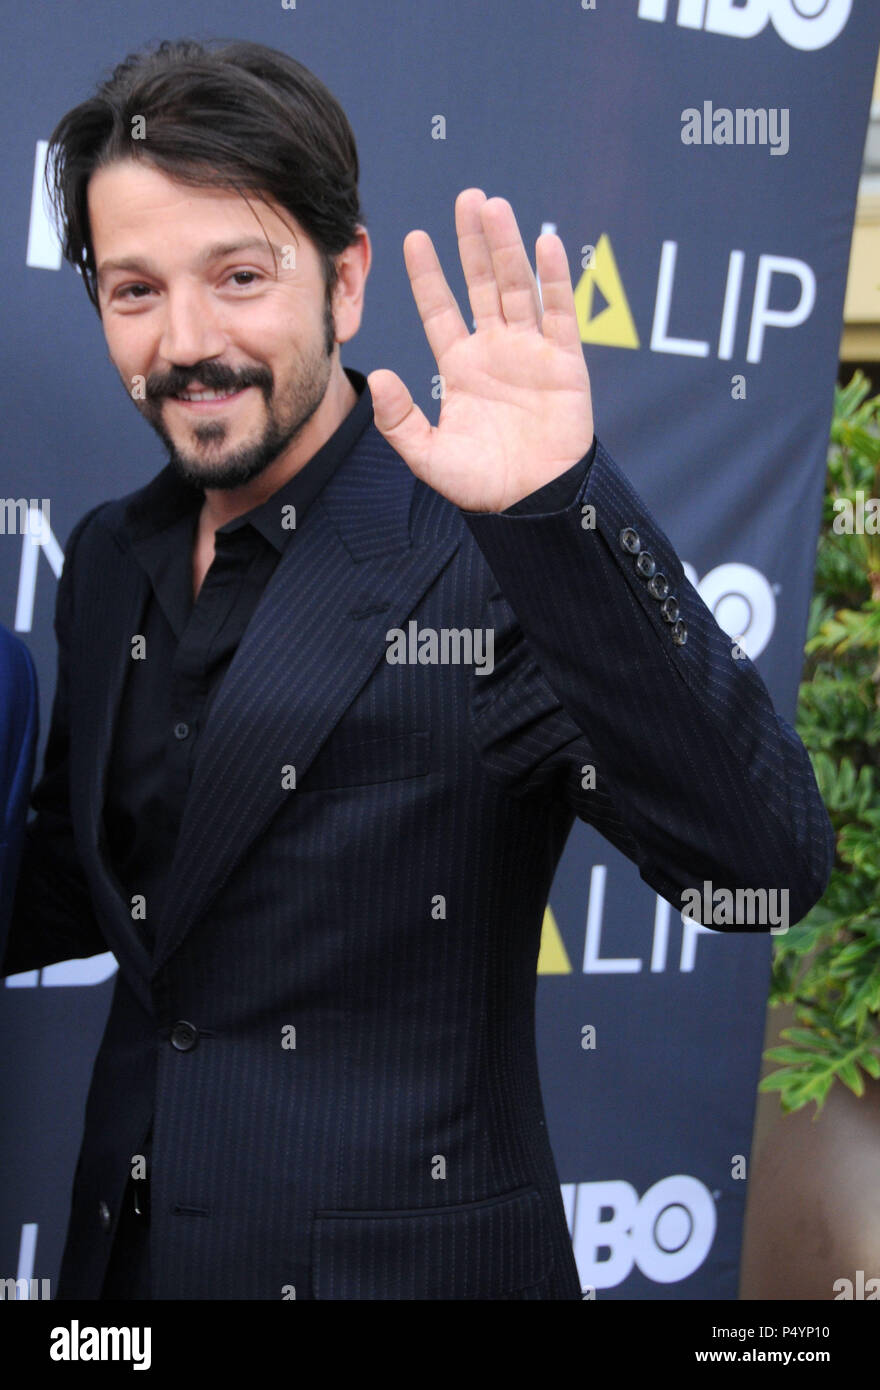 LOS ANGELES, CA - JULY 23: Actor Diego Luna attends the NALIP Latino Media Awards on June 23, 2018 at The Ray Dolby Ballroom in Los Angeles, California. Photo by Barry King/Alamy Live News Stock Photo